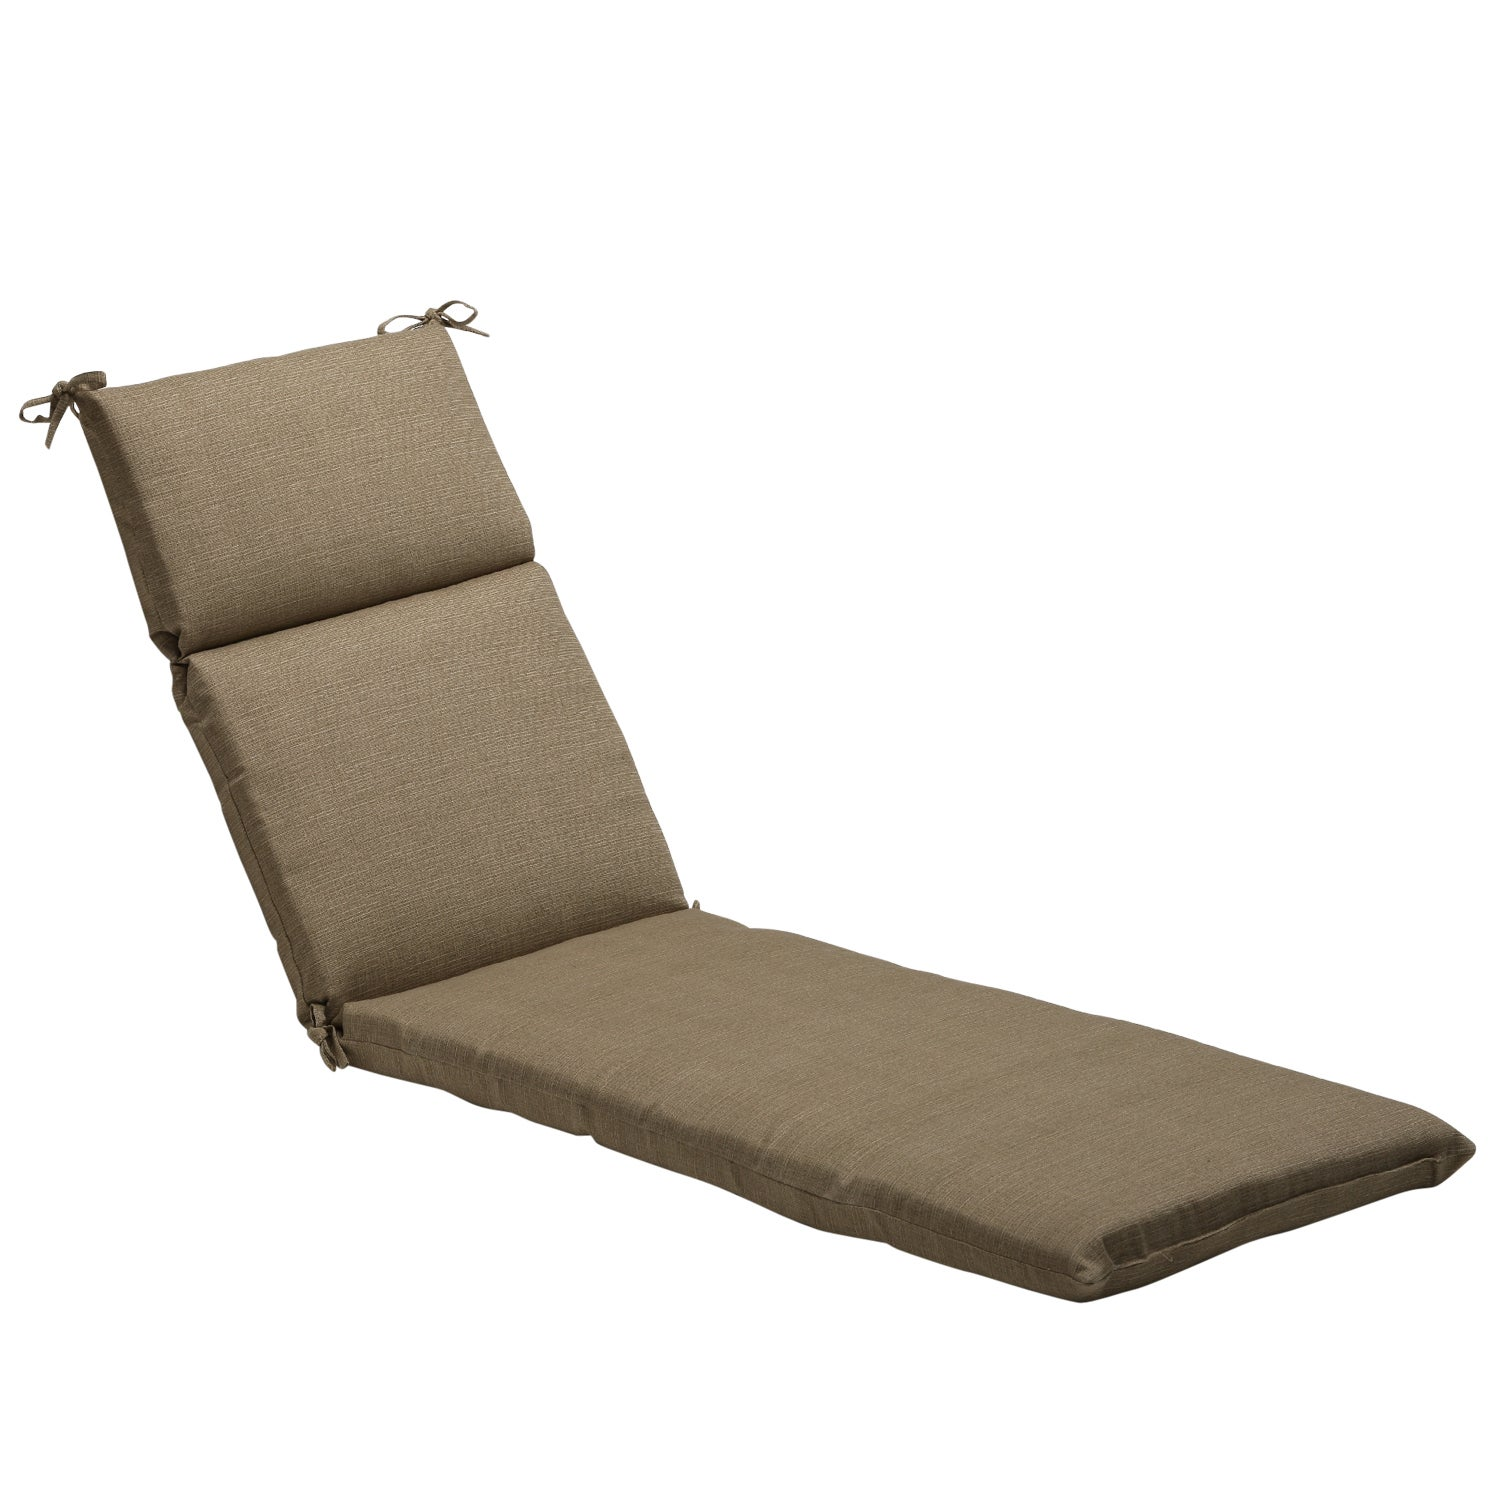 Solid Taupe Textured Outdoor Chaise Lounge Cushion Overstock Shopping Big